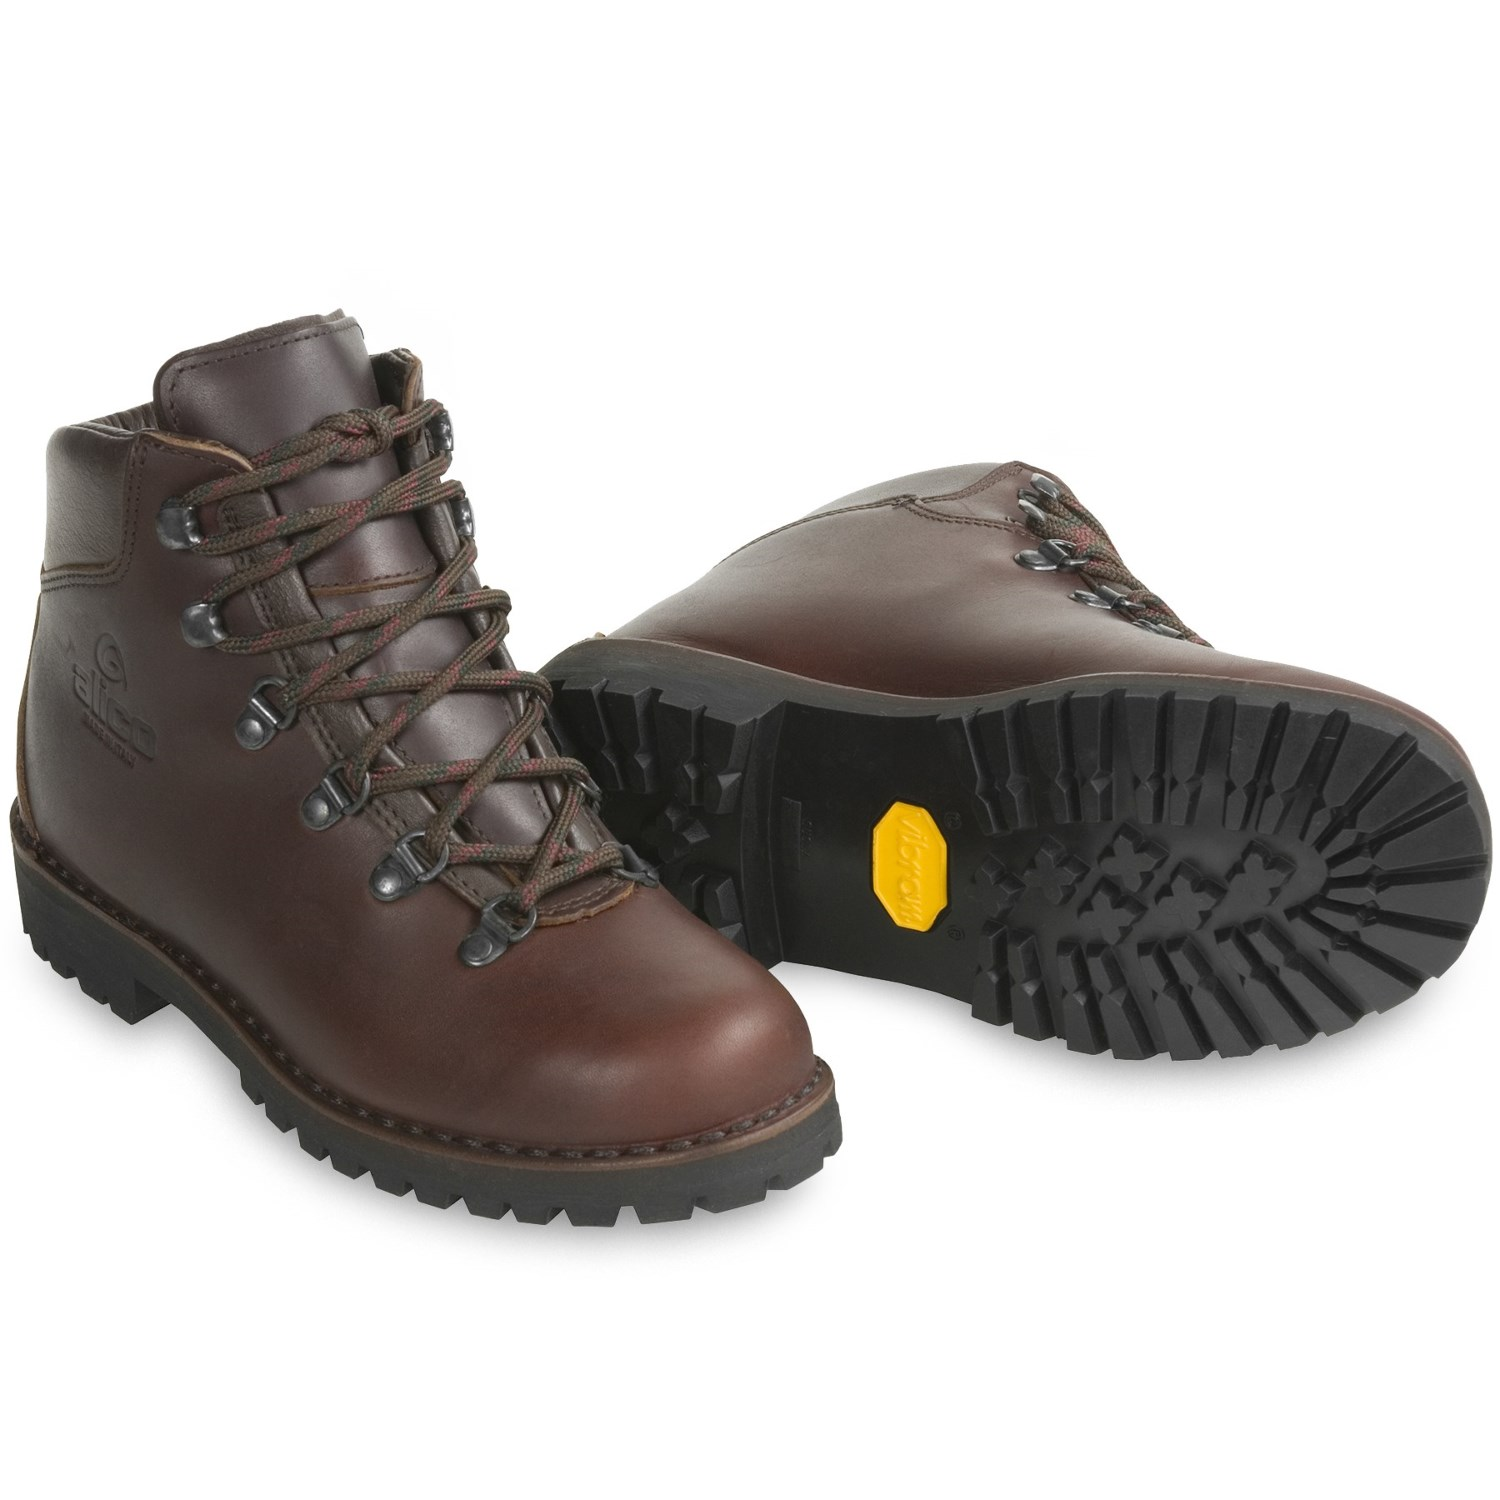 Alico Tahoe Hiking Boots For Women In Brown